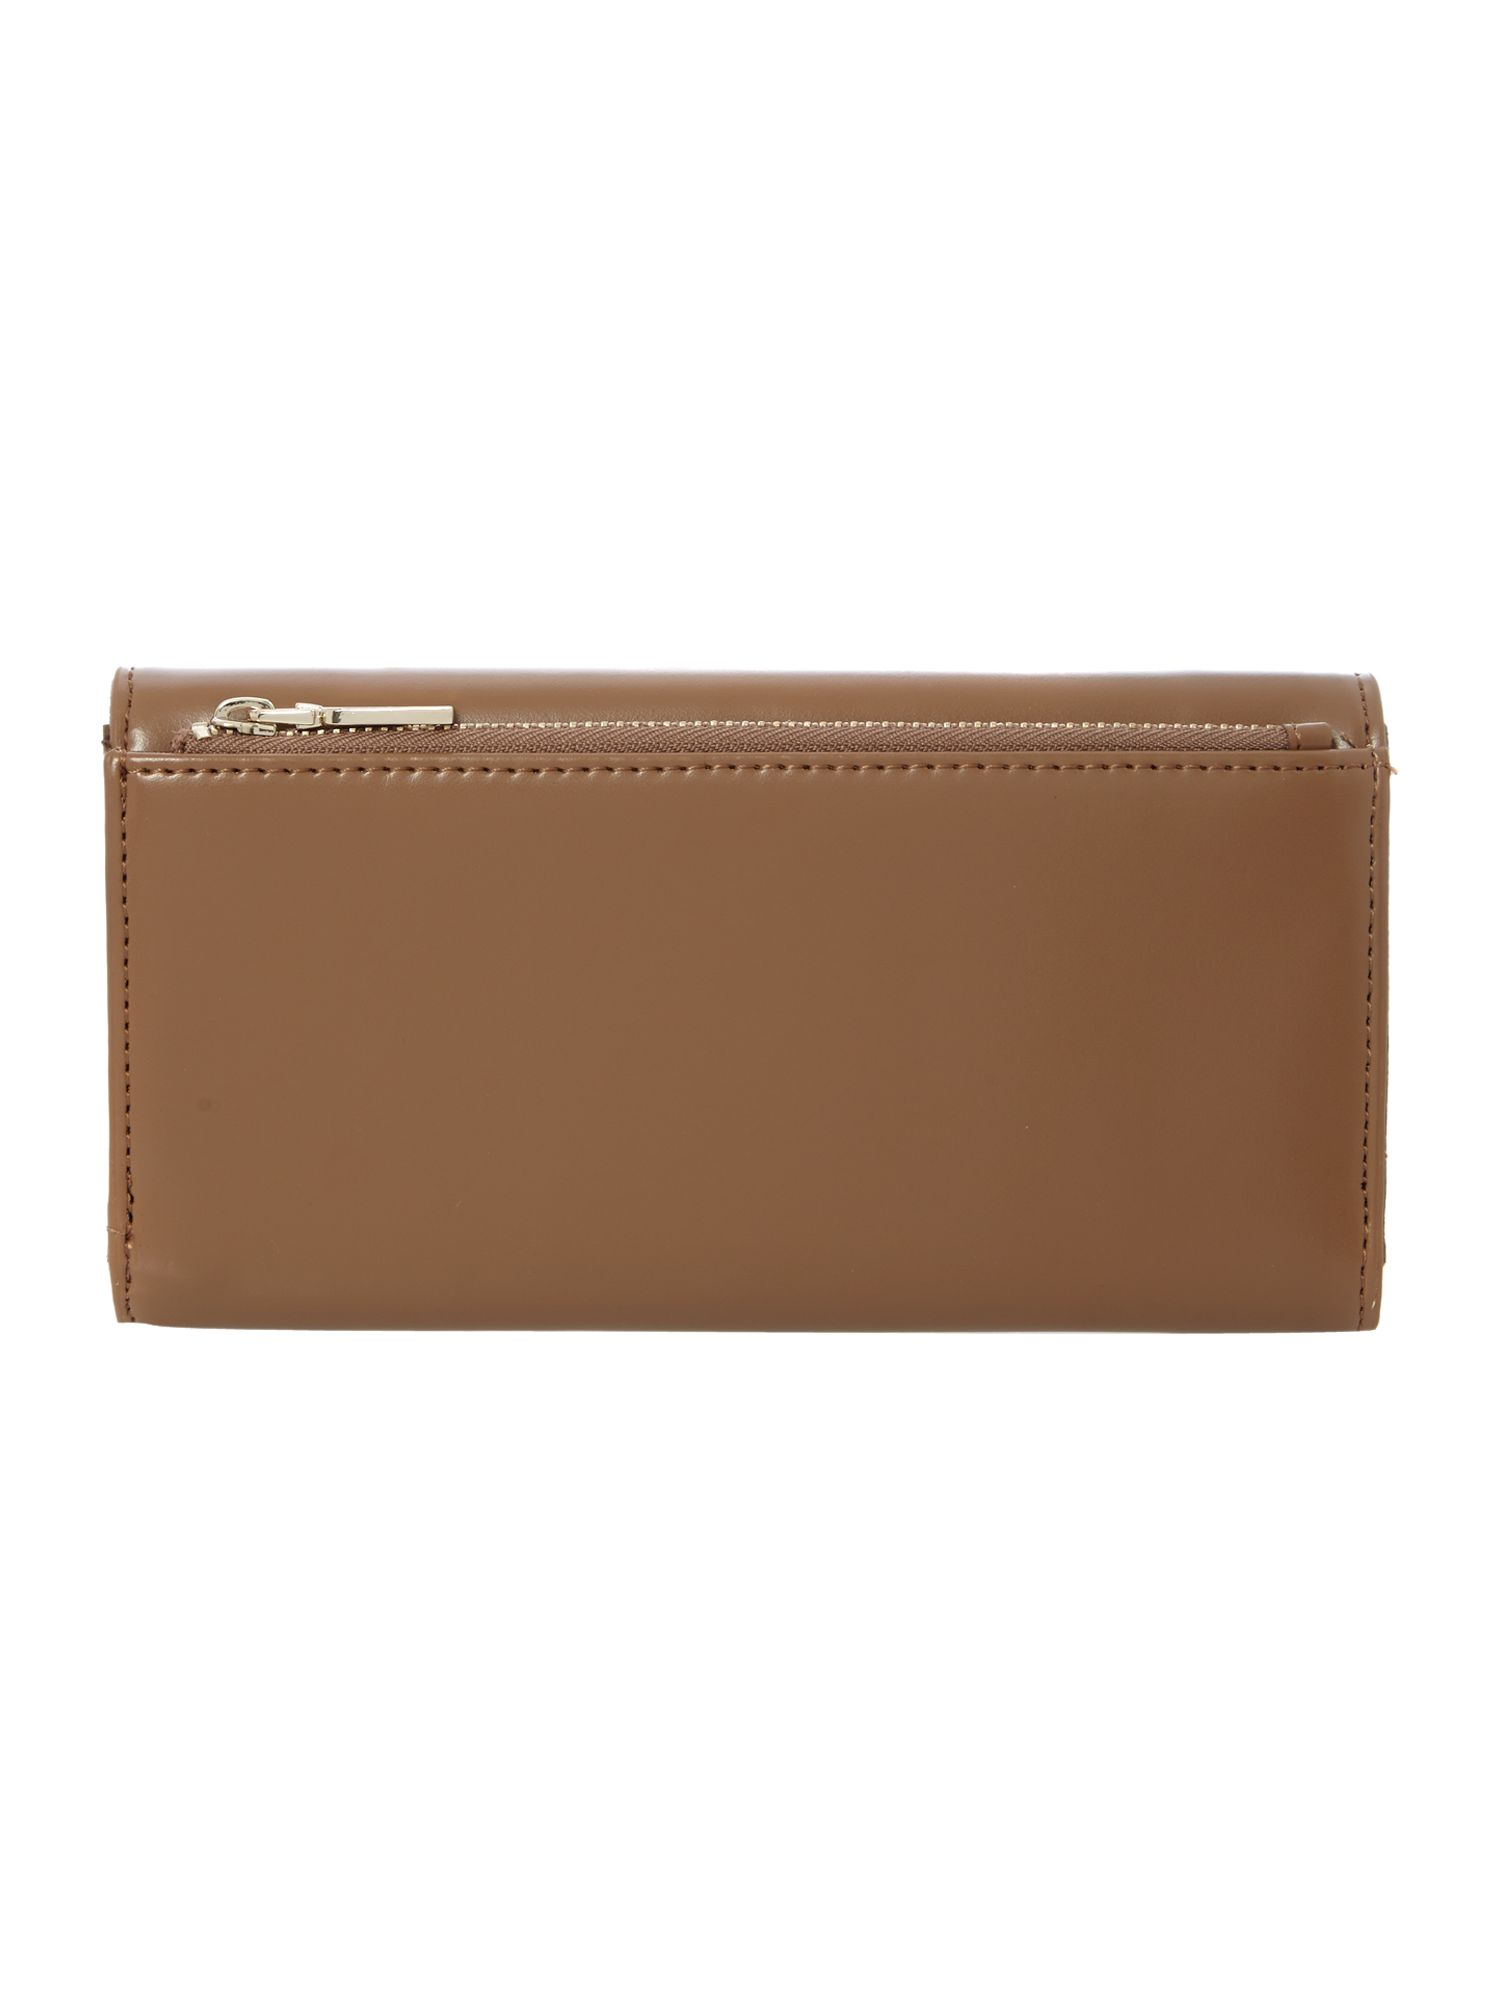 Brown large frame saffiano flapover purse